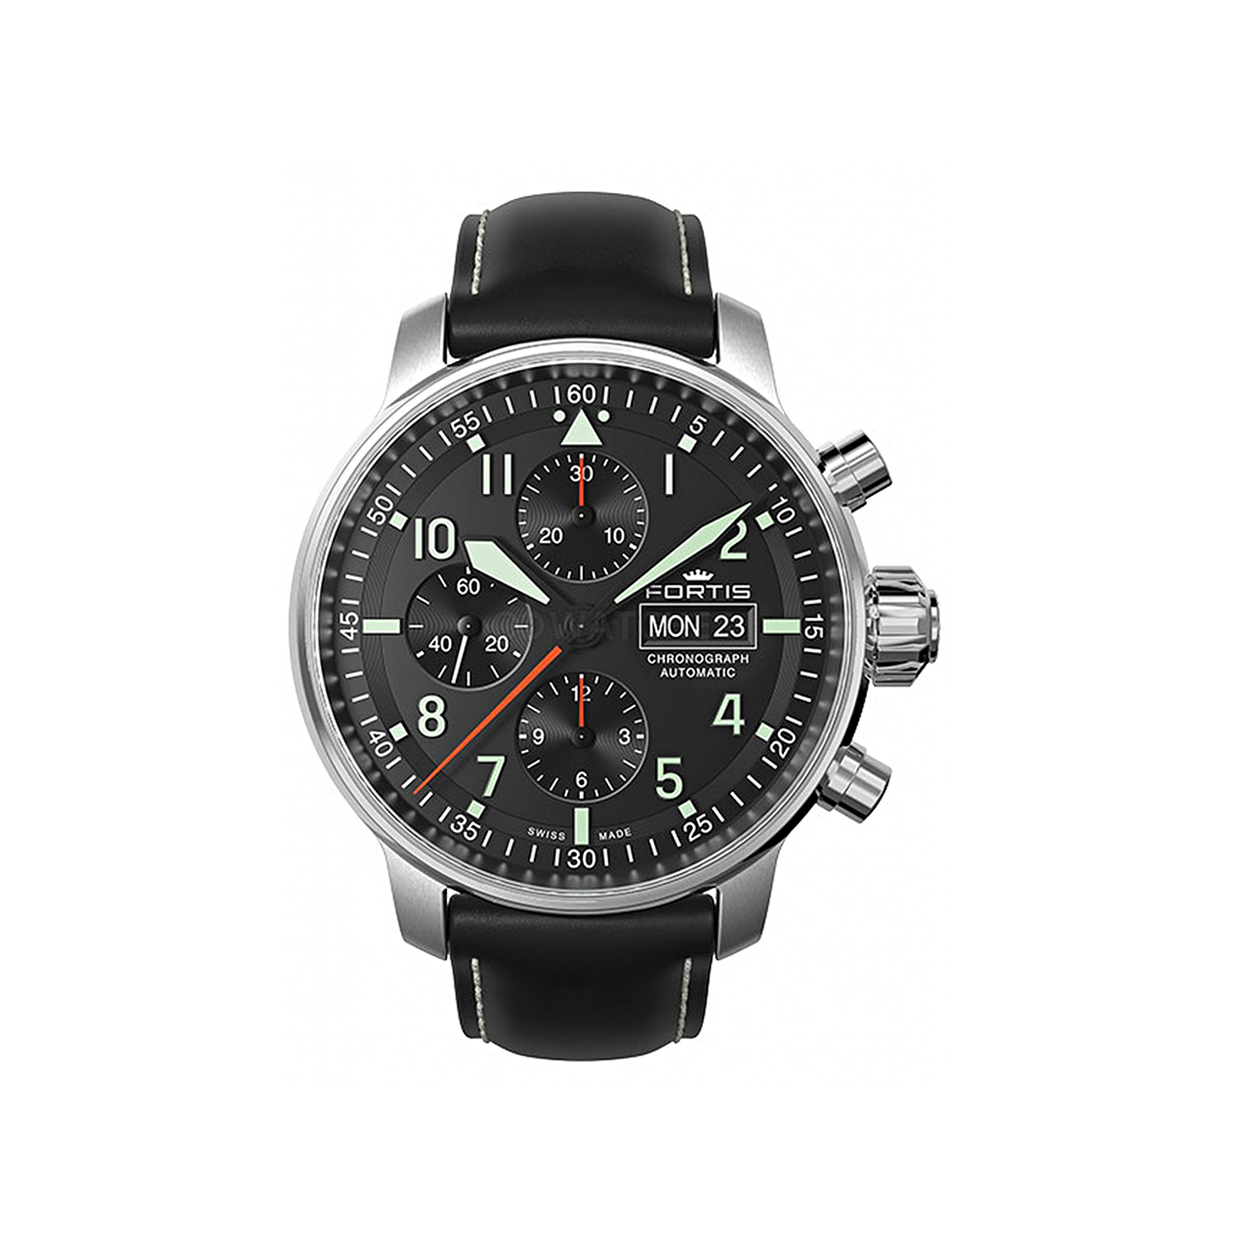 FORTIS FLIEGER PROFESSIONAL CHRONO